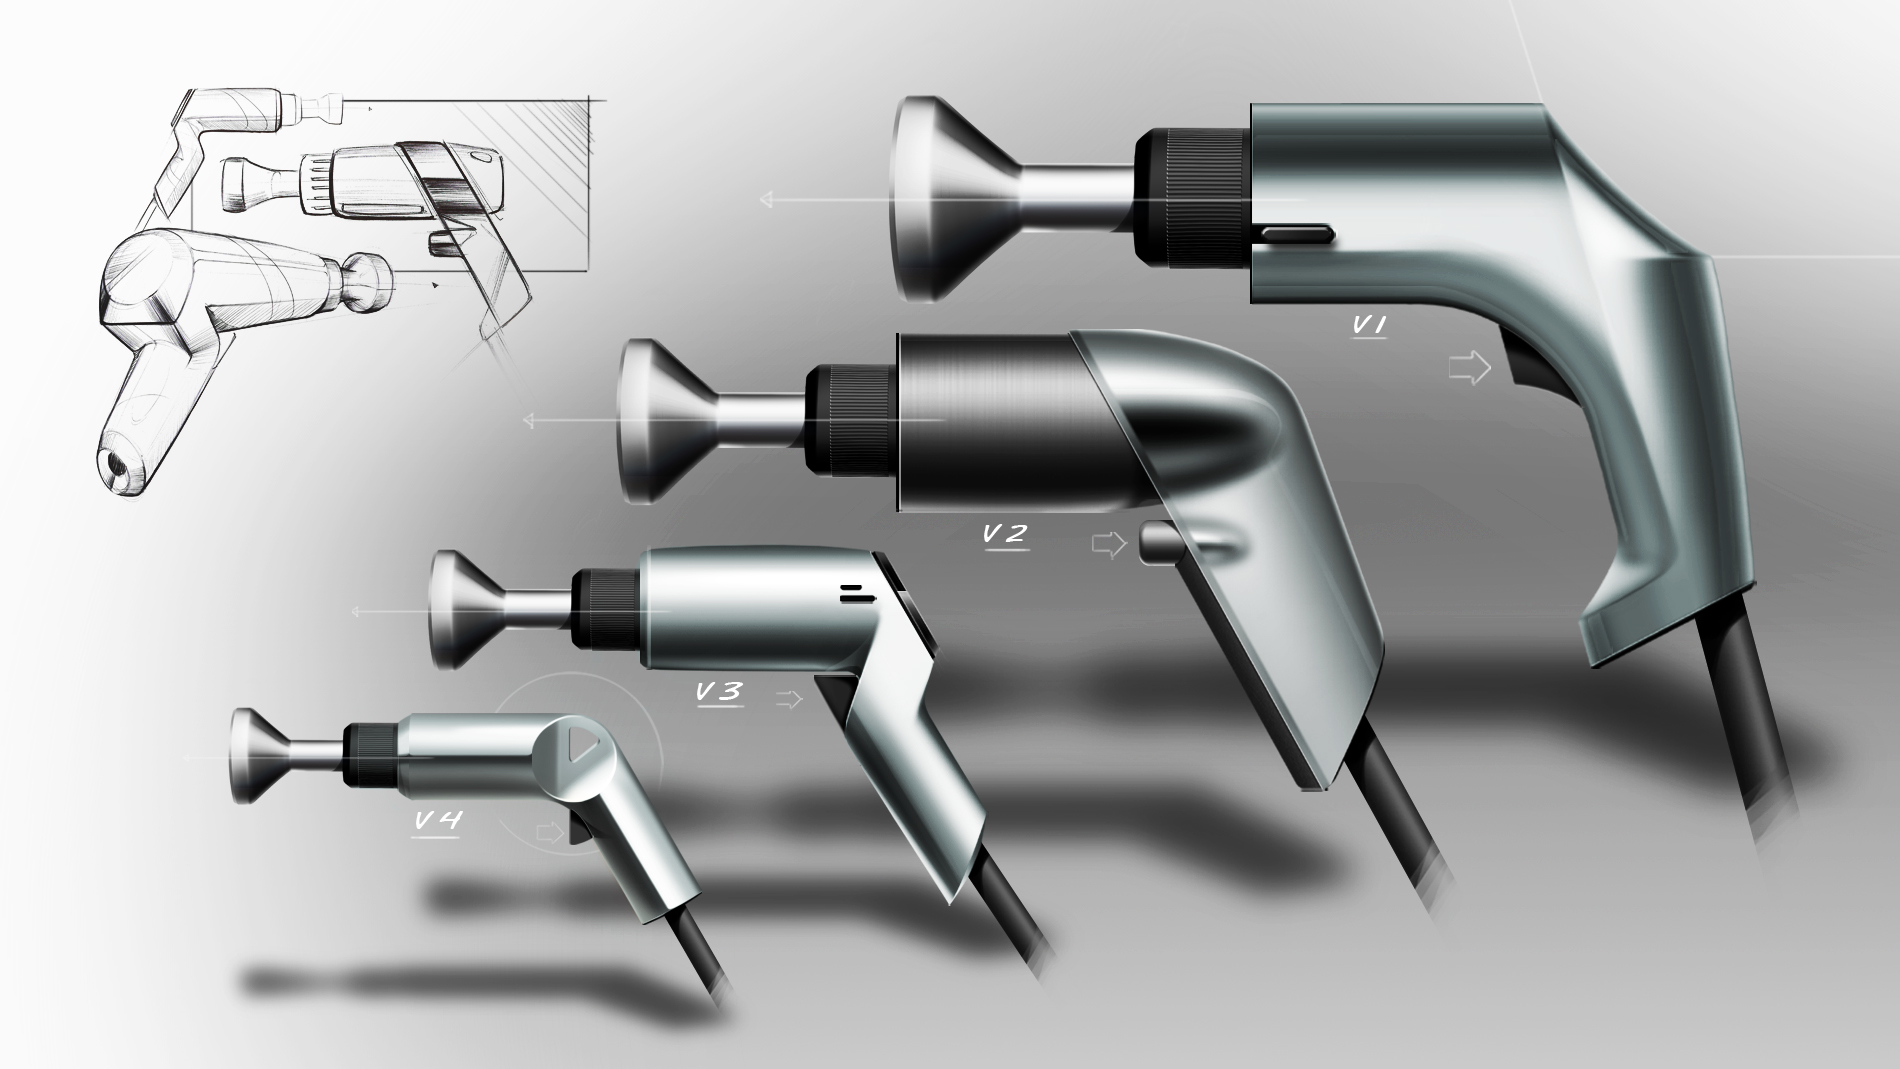 design sketche of a pneumatic screwdrivers 5 versions on grey background